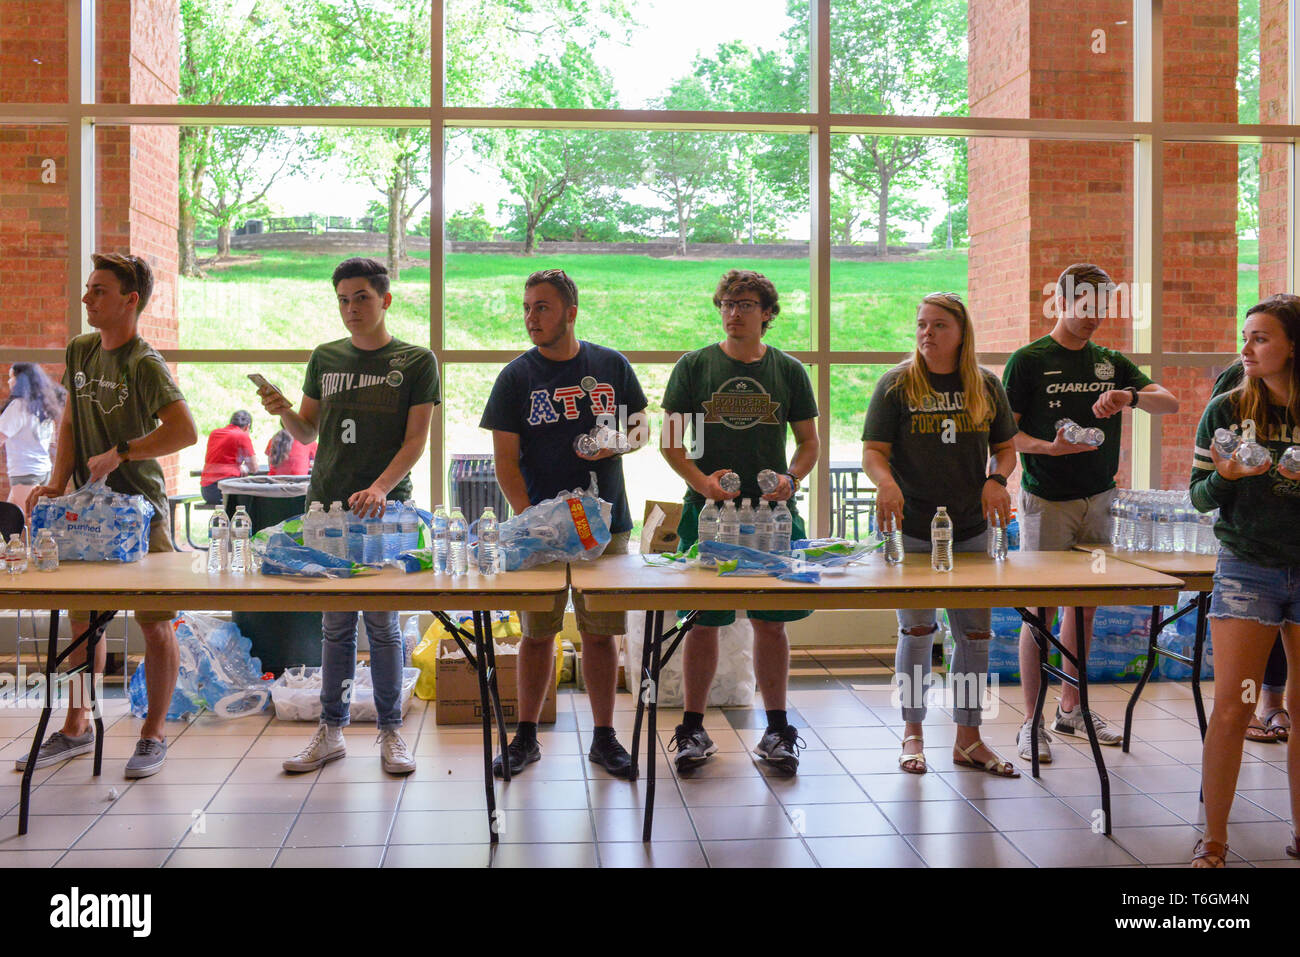 Charlotte, North Carolina, USA. 01st May, 2019. Students, teachers, and community members gather to hold vigil at UNCC including this group handing out water bottles. A mass shooting occurred at the university the prior day adding one more school to the list of school shootings in America in the midst of a gun control controversy. Credit: Castle Light Images/Alamy Live News - Stock Image